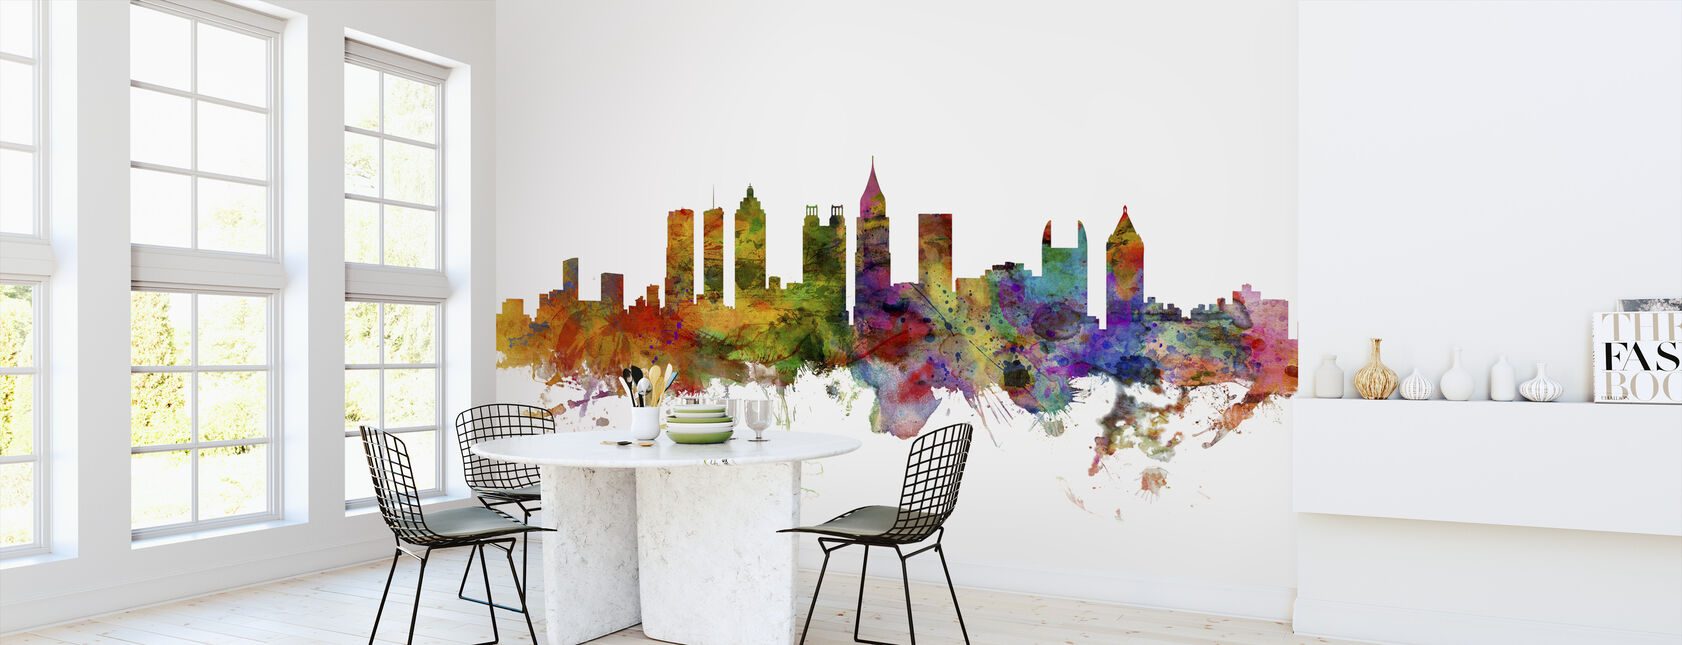 Atlanta Georgia Skyline - Wallpaper - Kitchen